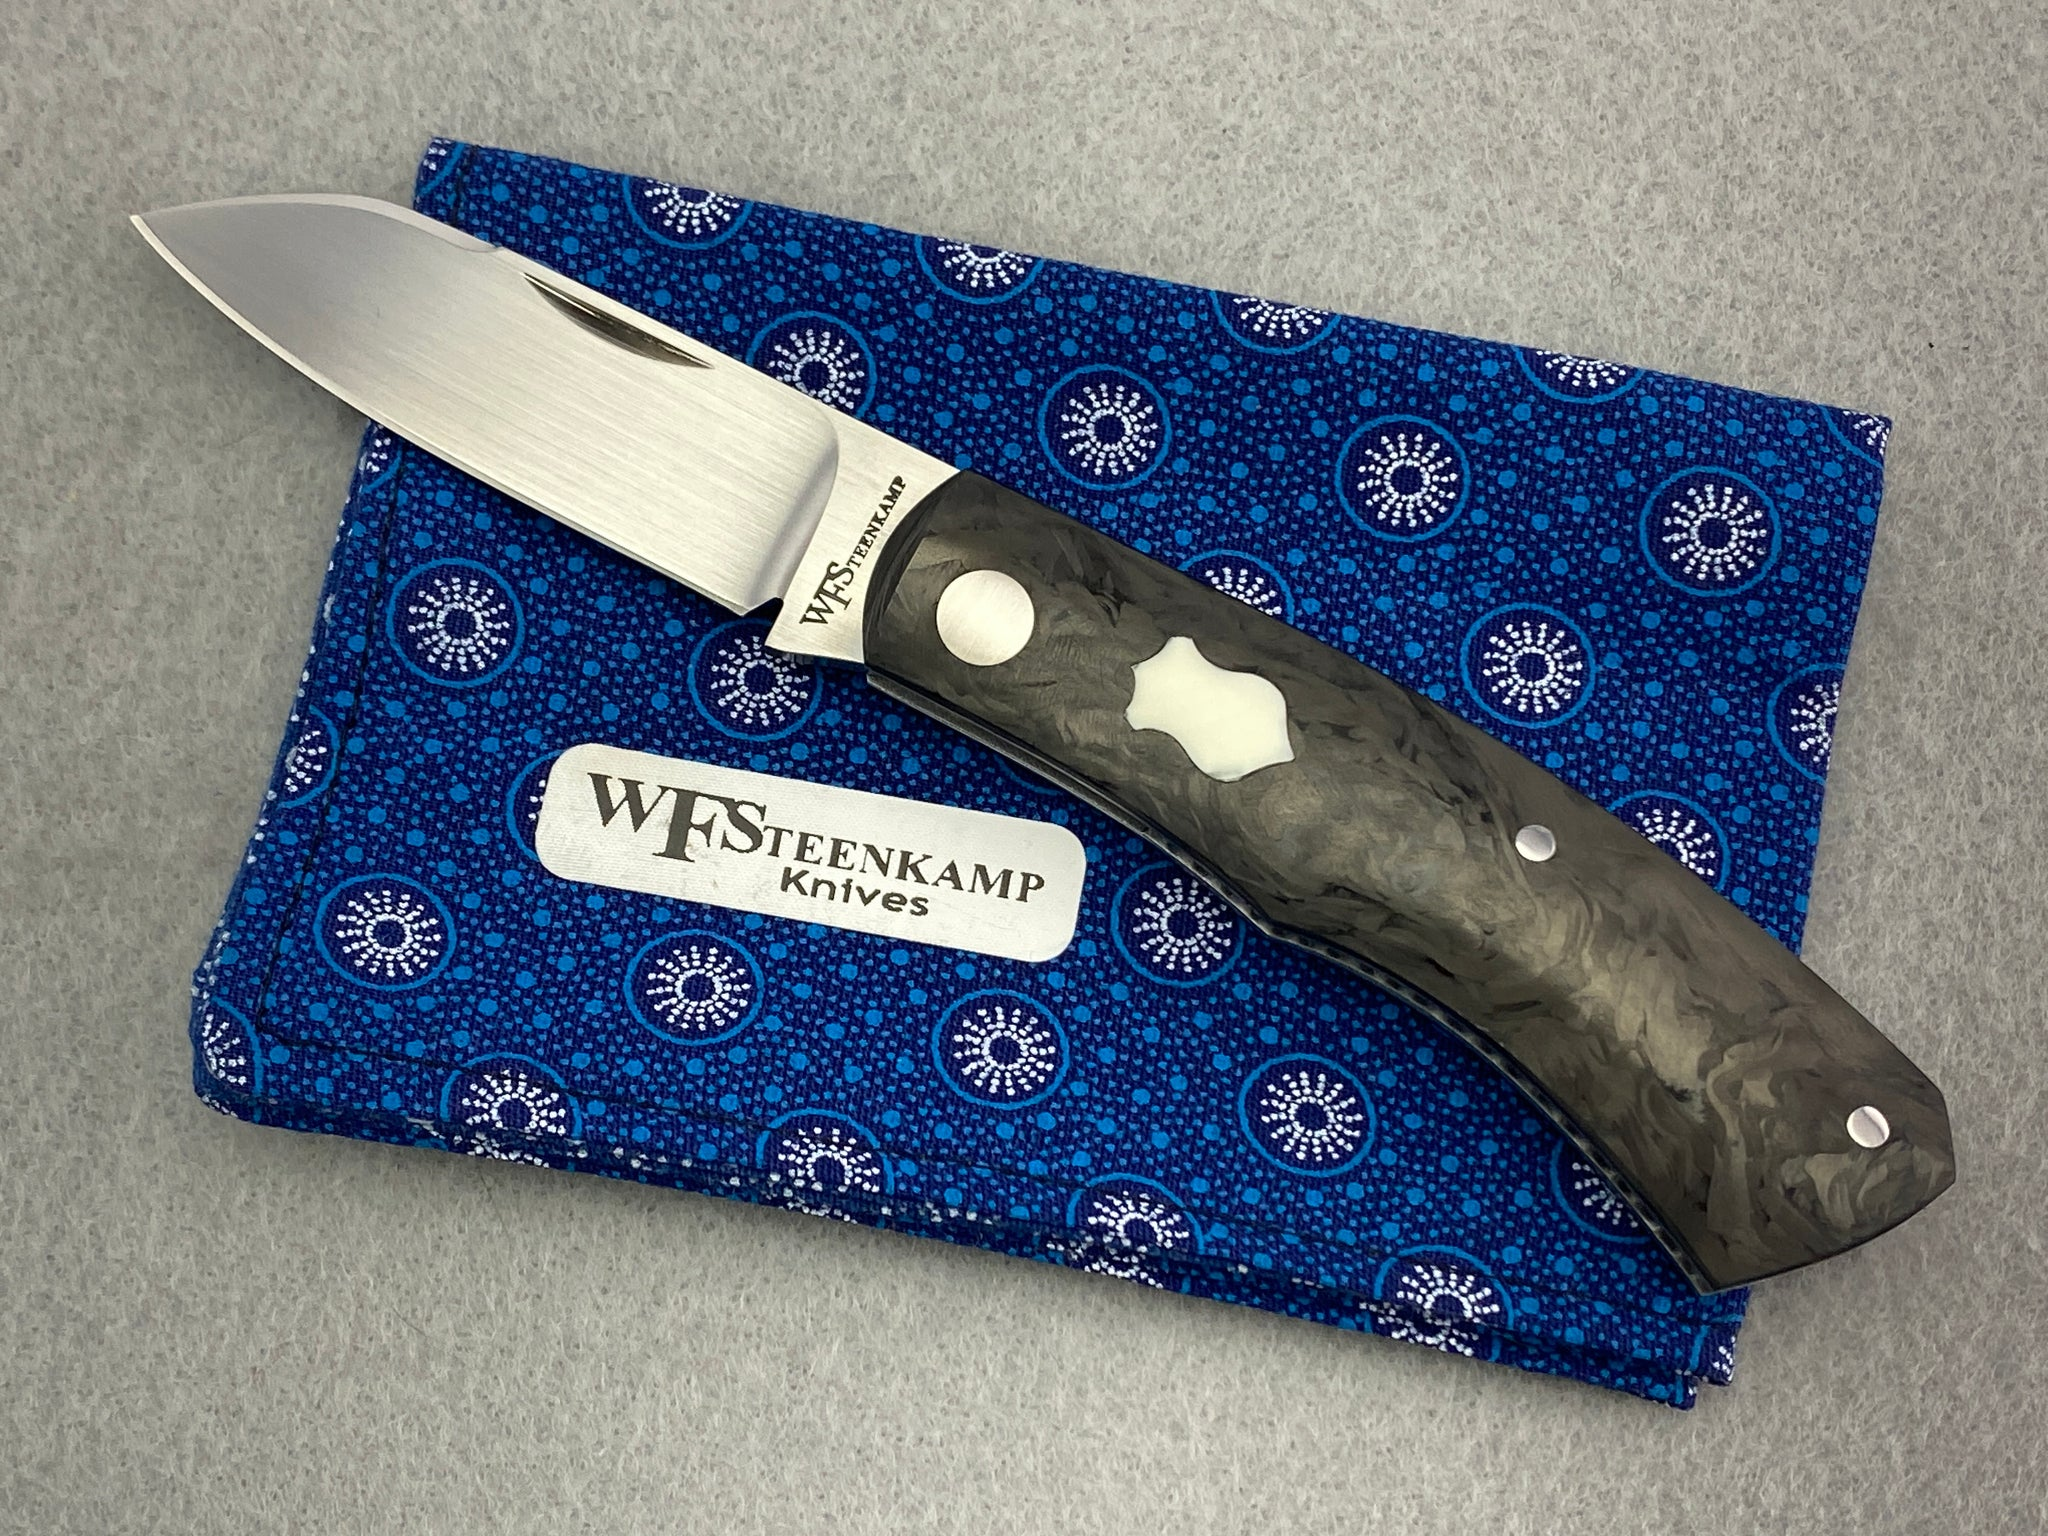 Willem Steenkamp Dino Model Slipjoint Swirl Carbon Fiber